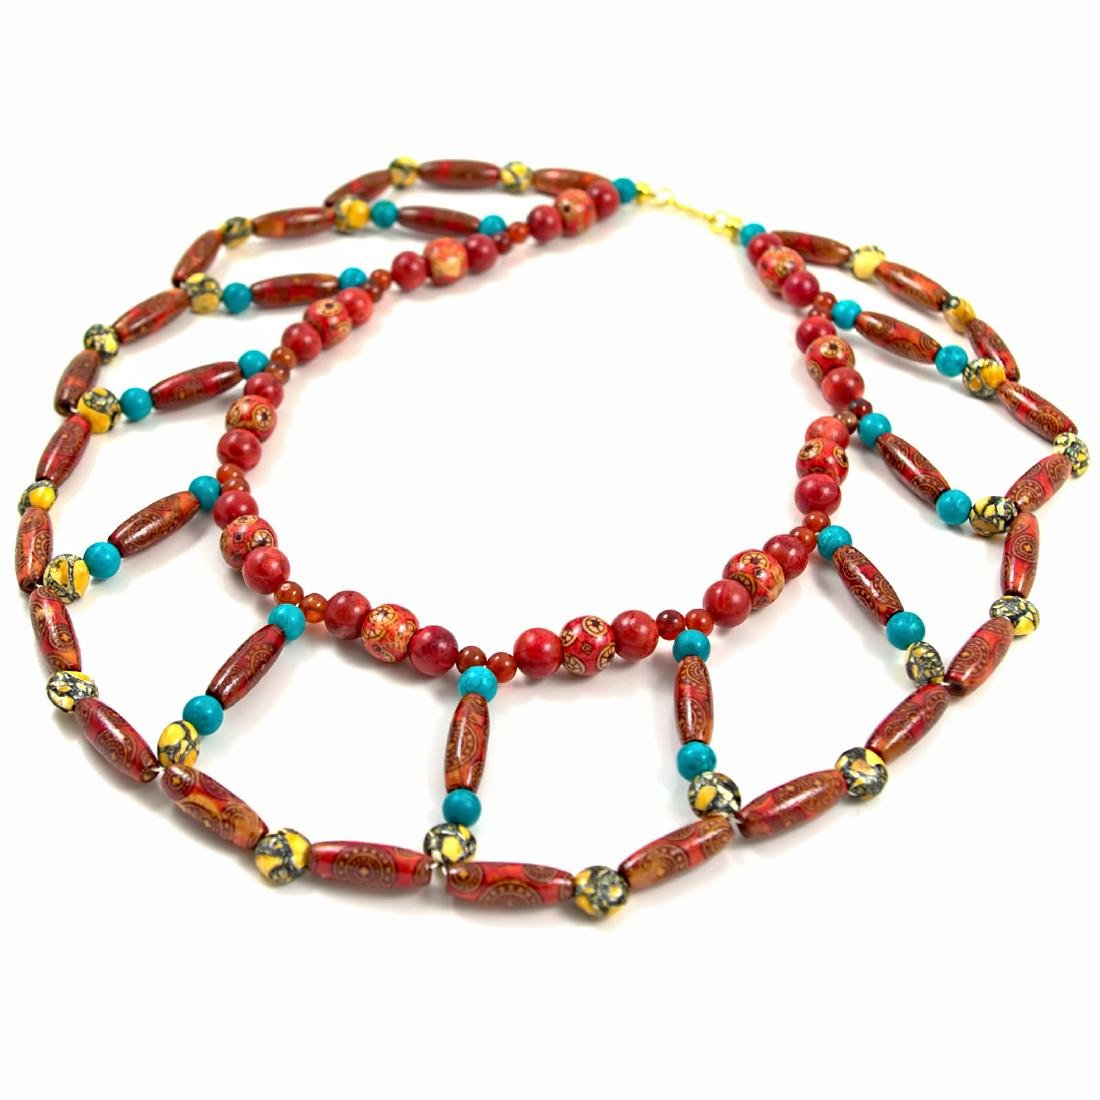 Egyptian Broad Collar Style Necklace - Wood, Coral,